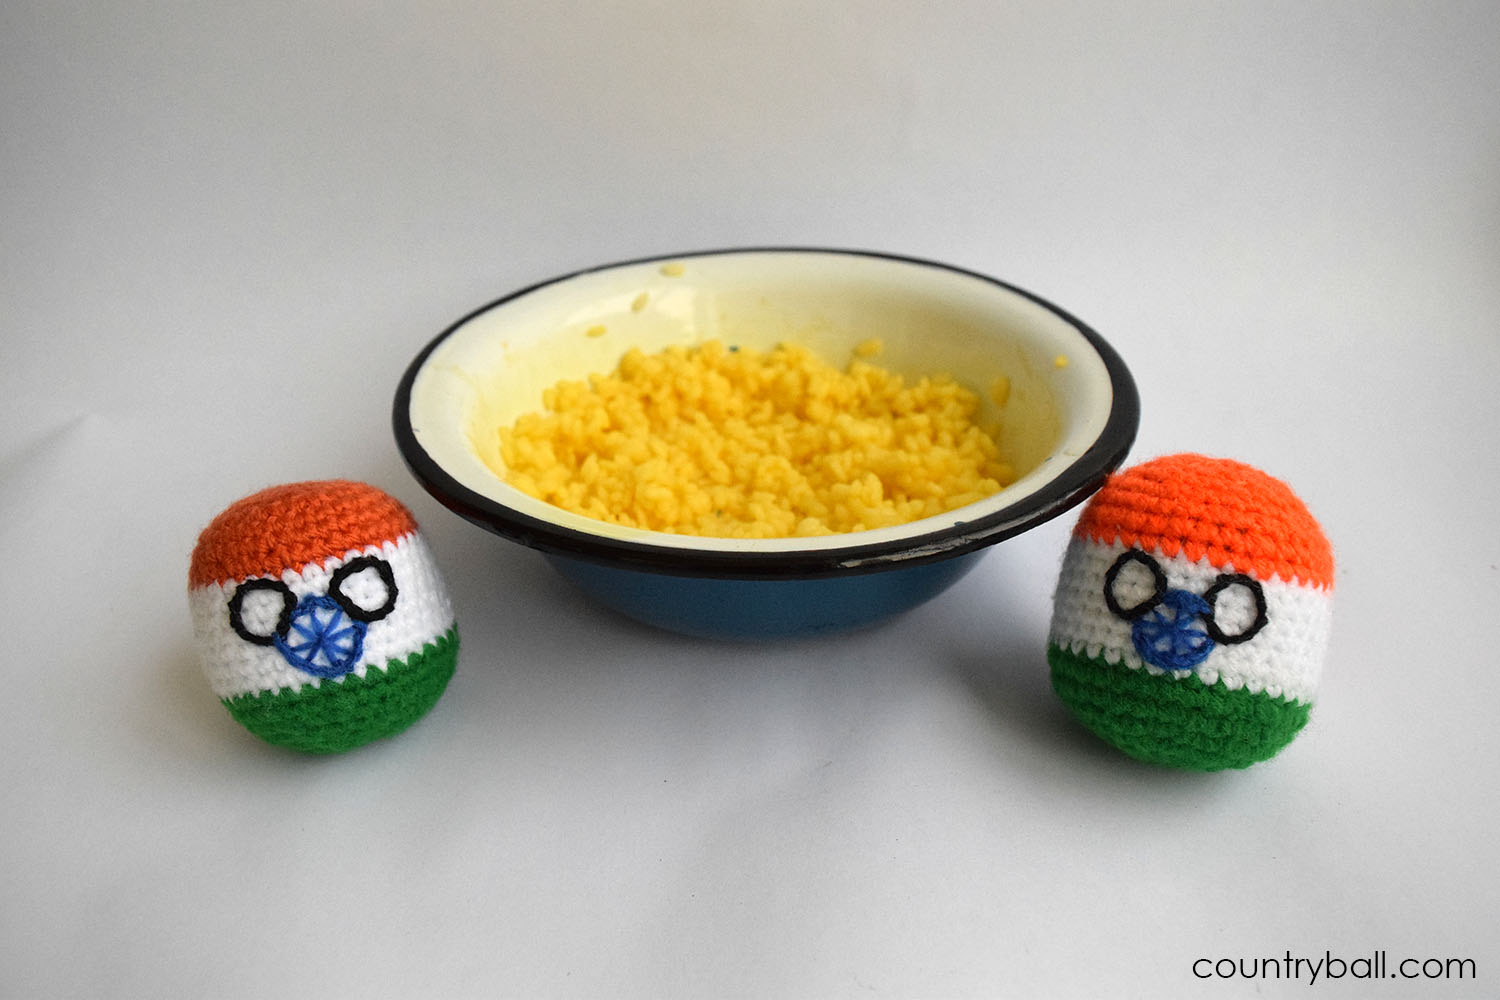 Indiaball enjoying some Rice with Curry